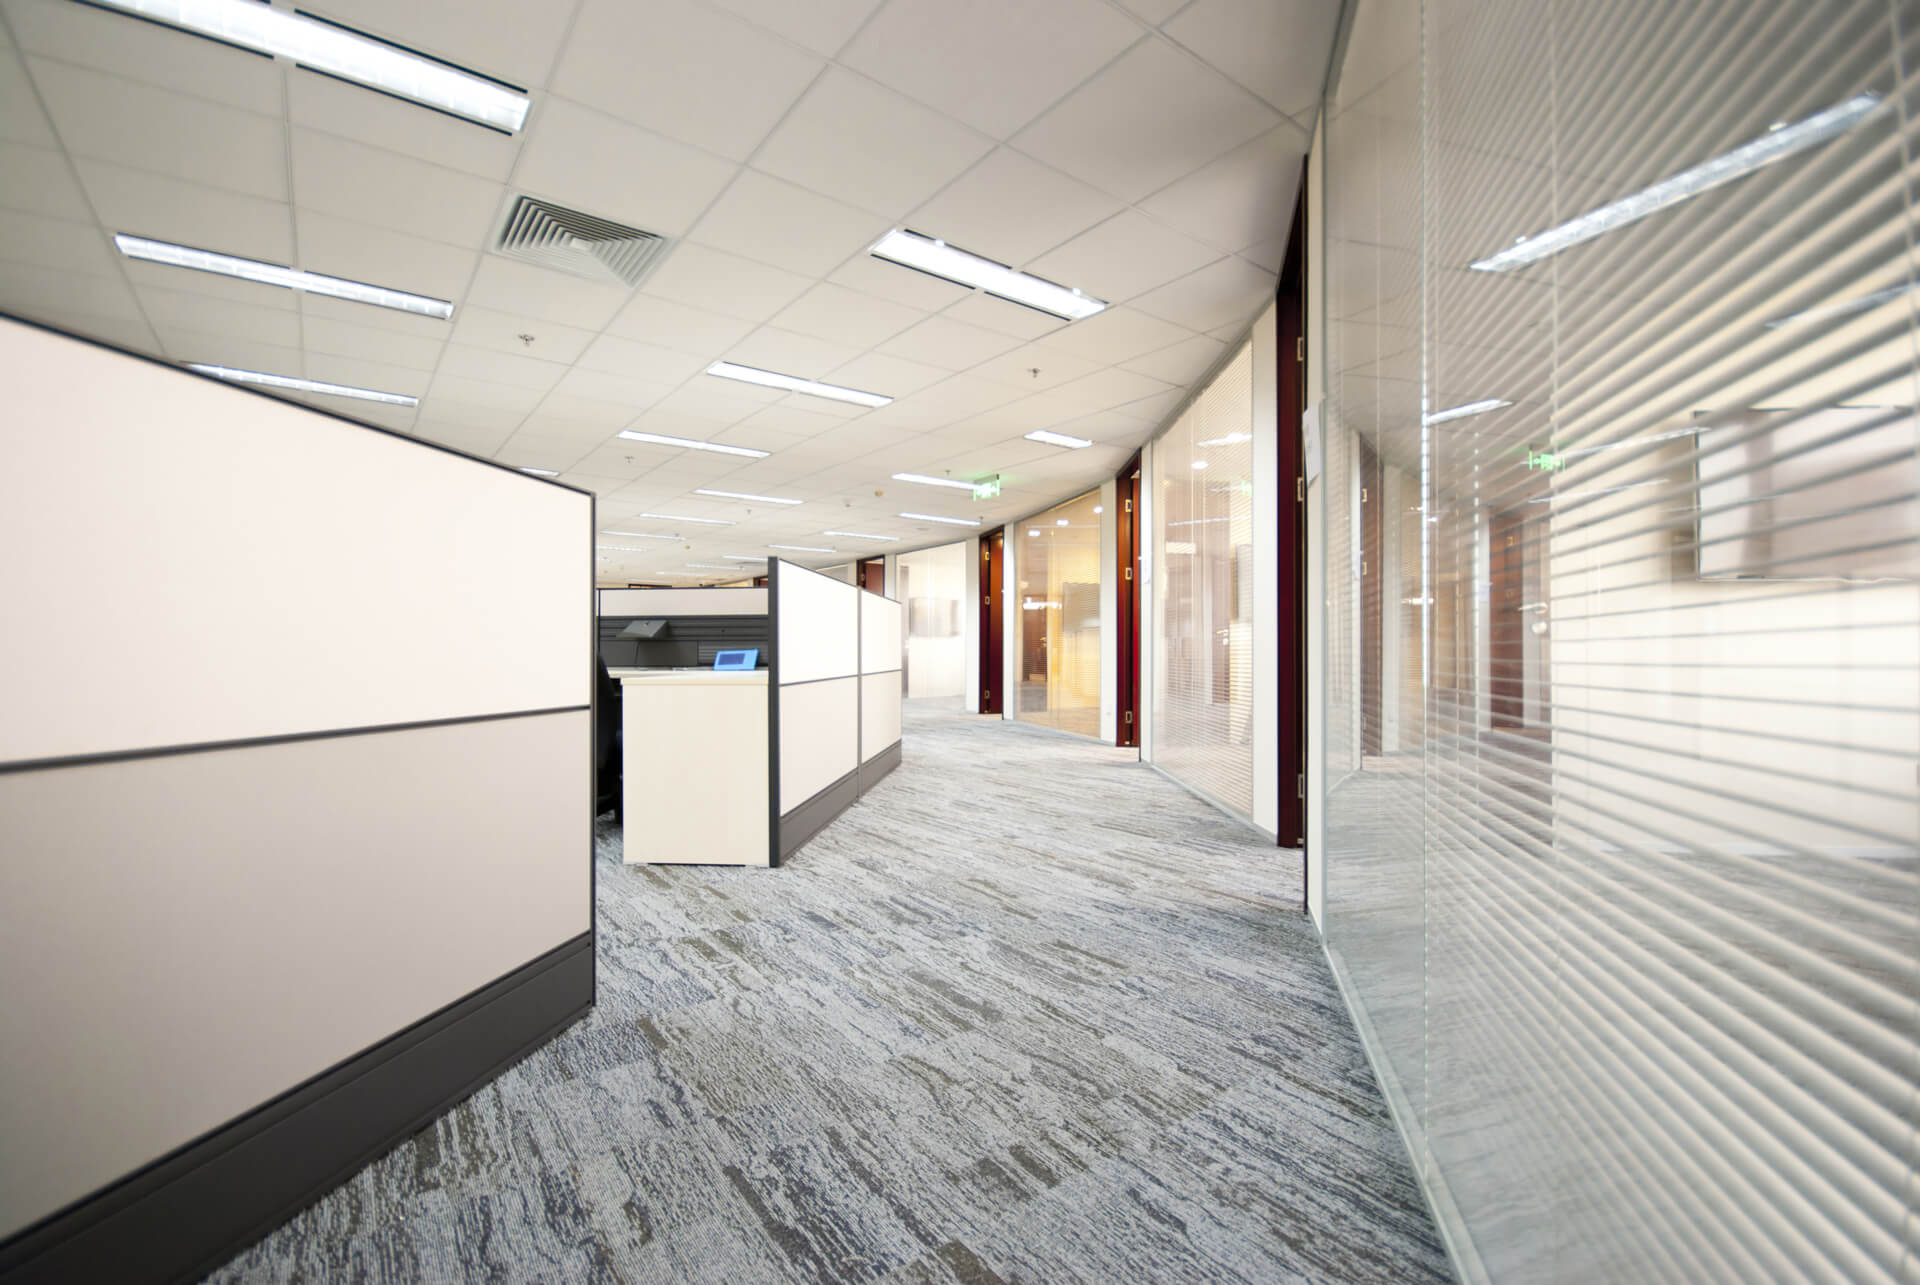 Glass office partitions with suspended ceilings & lighting